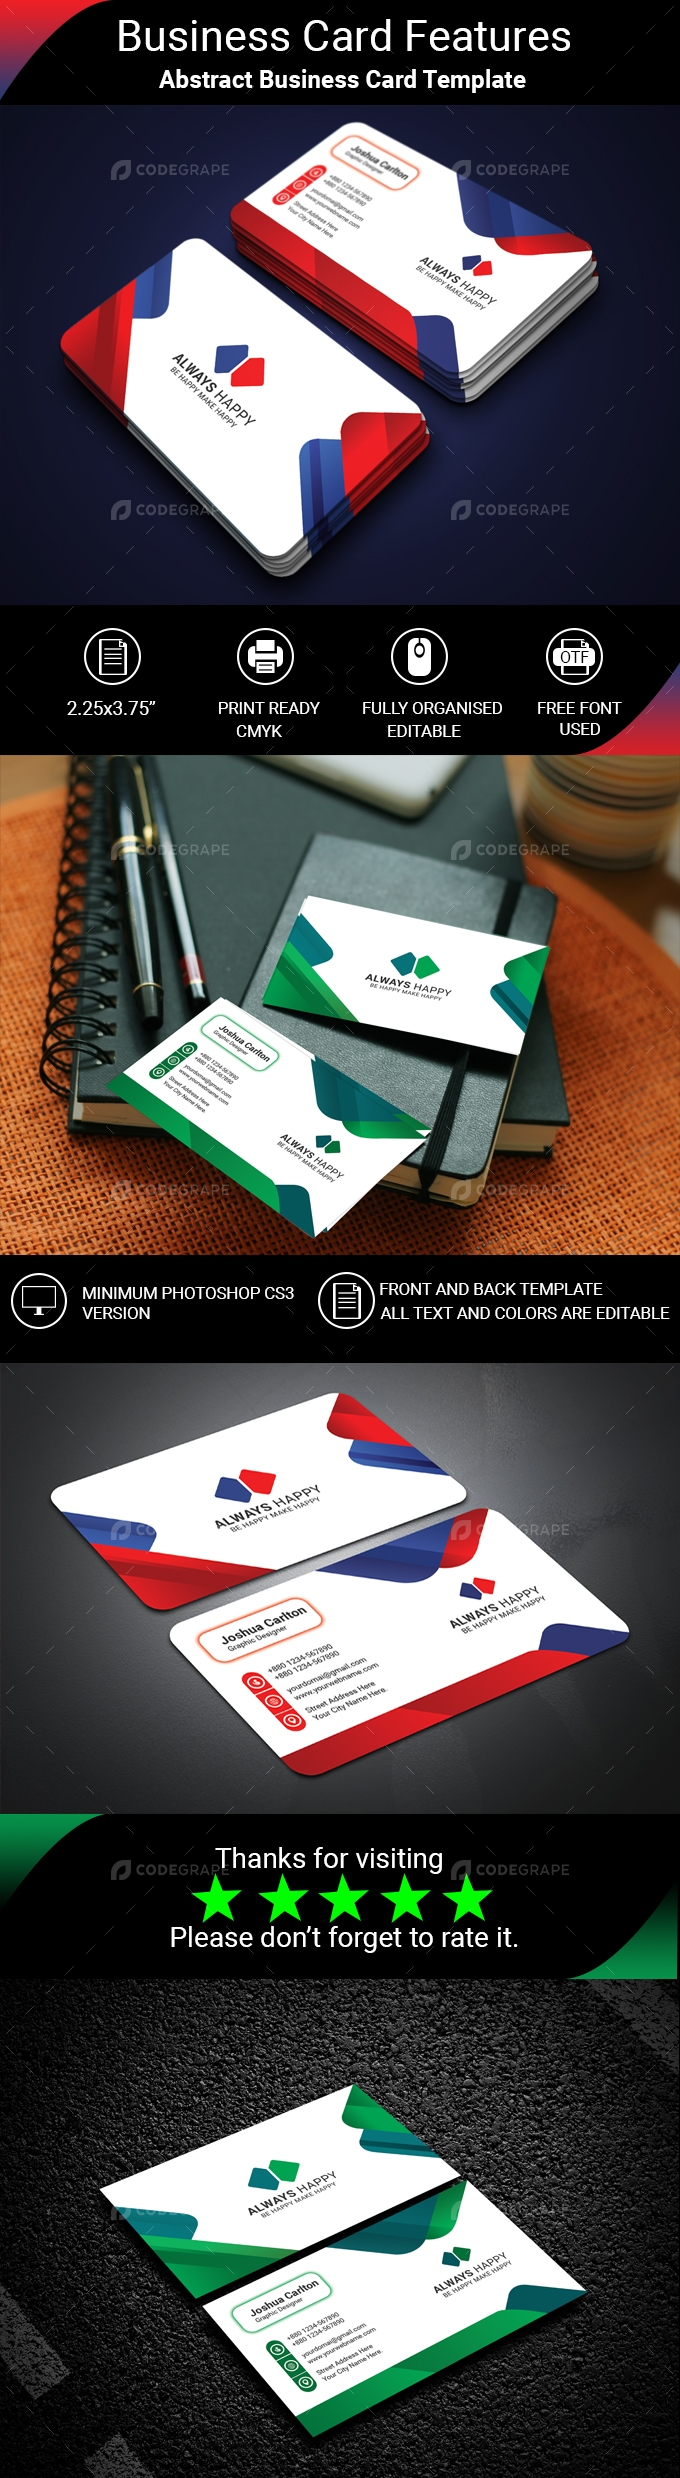 Abstract Business Card